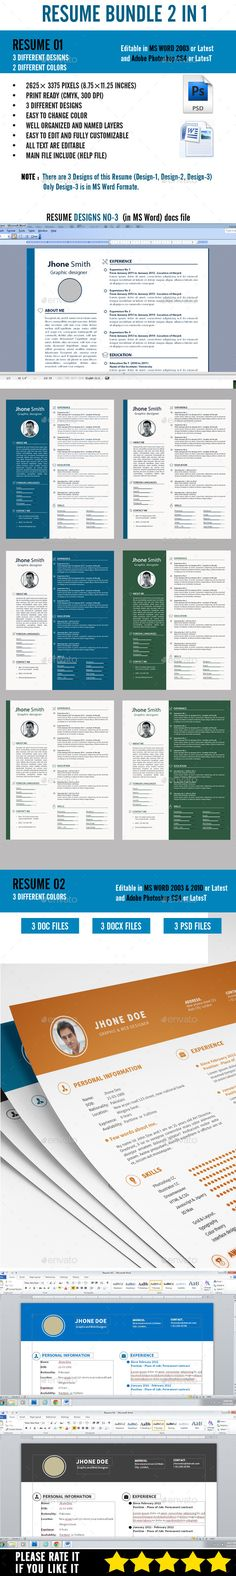 Professional Resume Resume Pinterest Professional resume - easy resumes